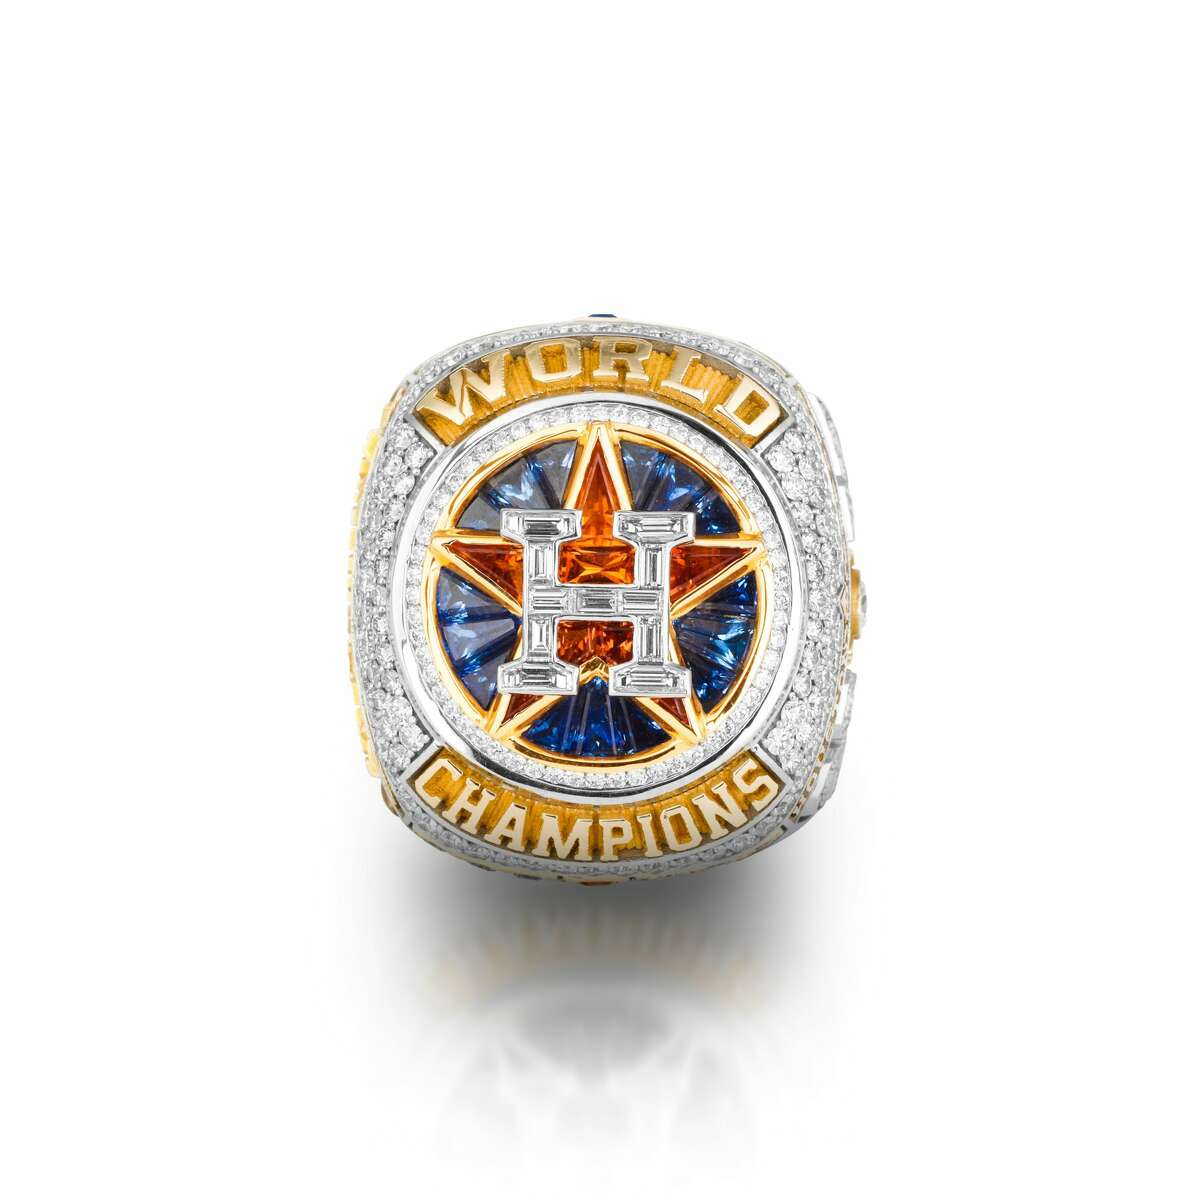 PHOTOS: Take a closer look at the Astros' World Series championship ring An authentic Houston Astros World Series championship ring was up for auction, but it has been pulled.